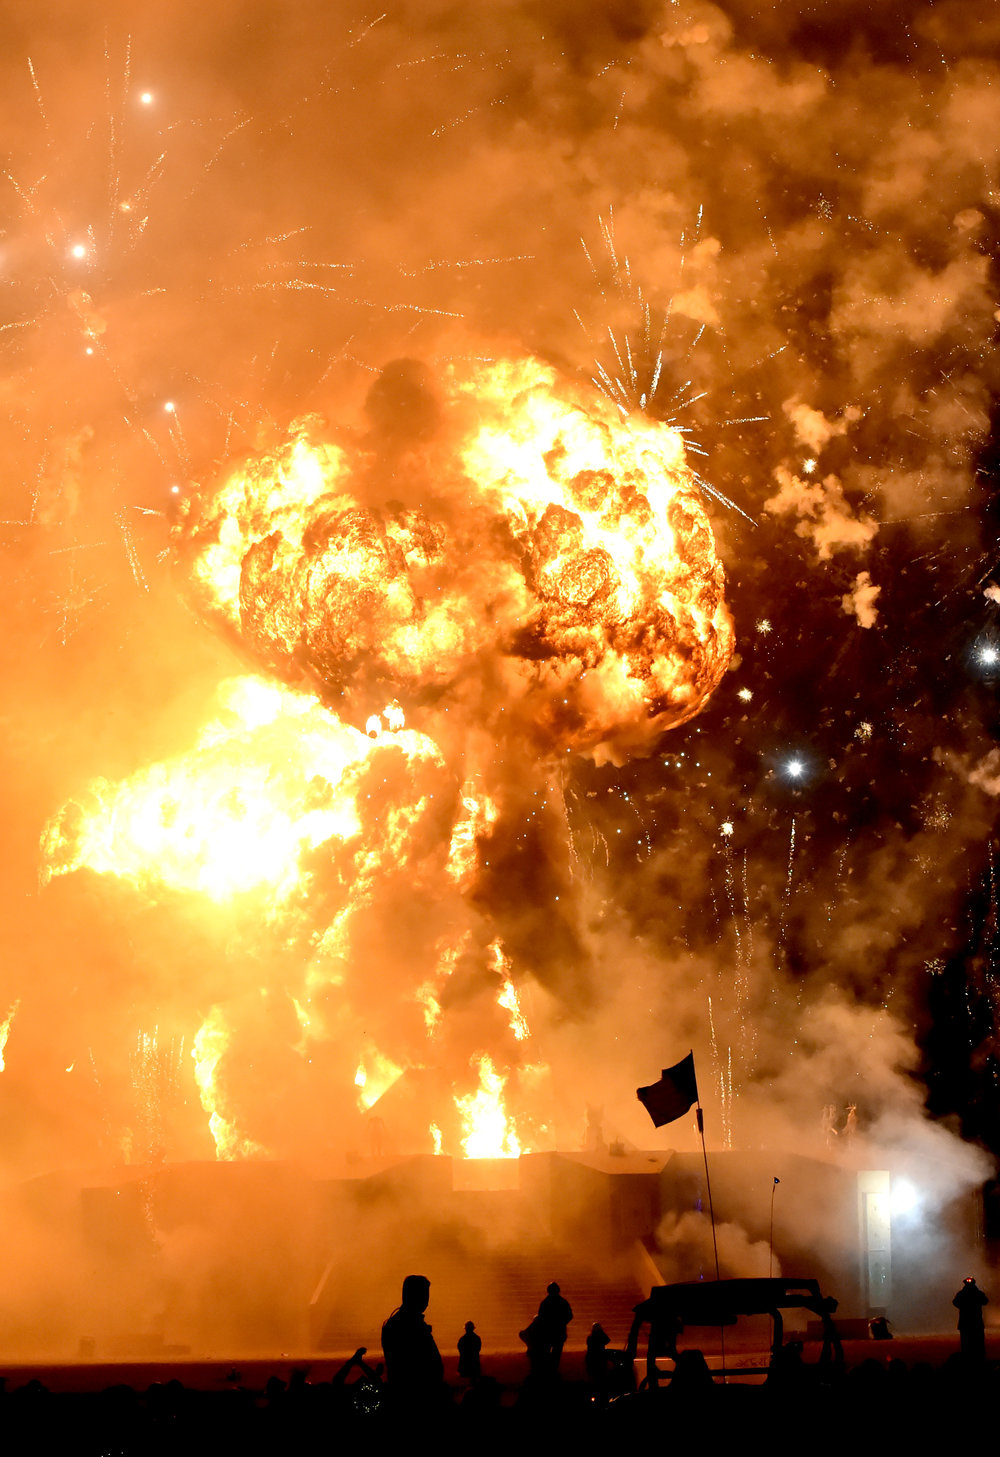 The explosions I've witnessed in 4 Burns have been the most spectacular explosions I've ever seen, if you saw this in the default world it would not be good